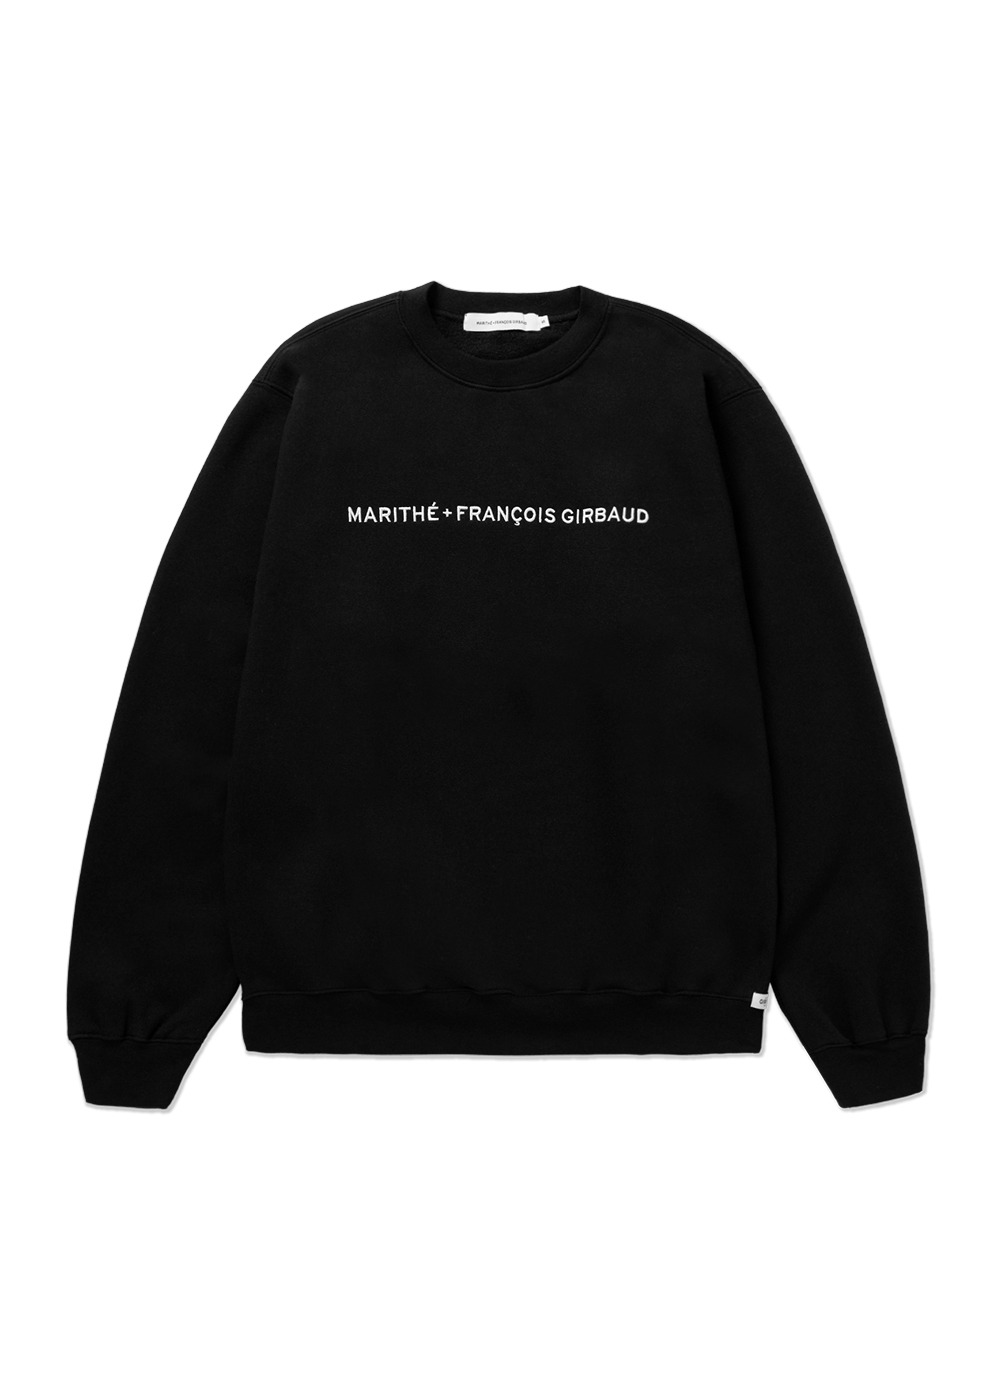 MARITHE FULL SIZE NAME LOGO SWEATSHIRT black